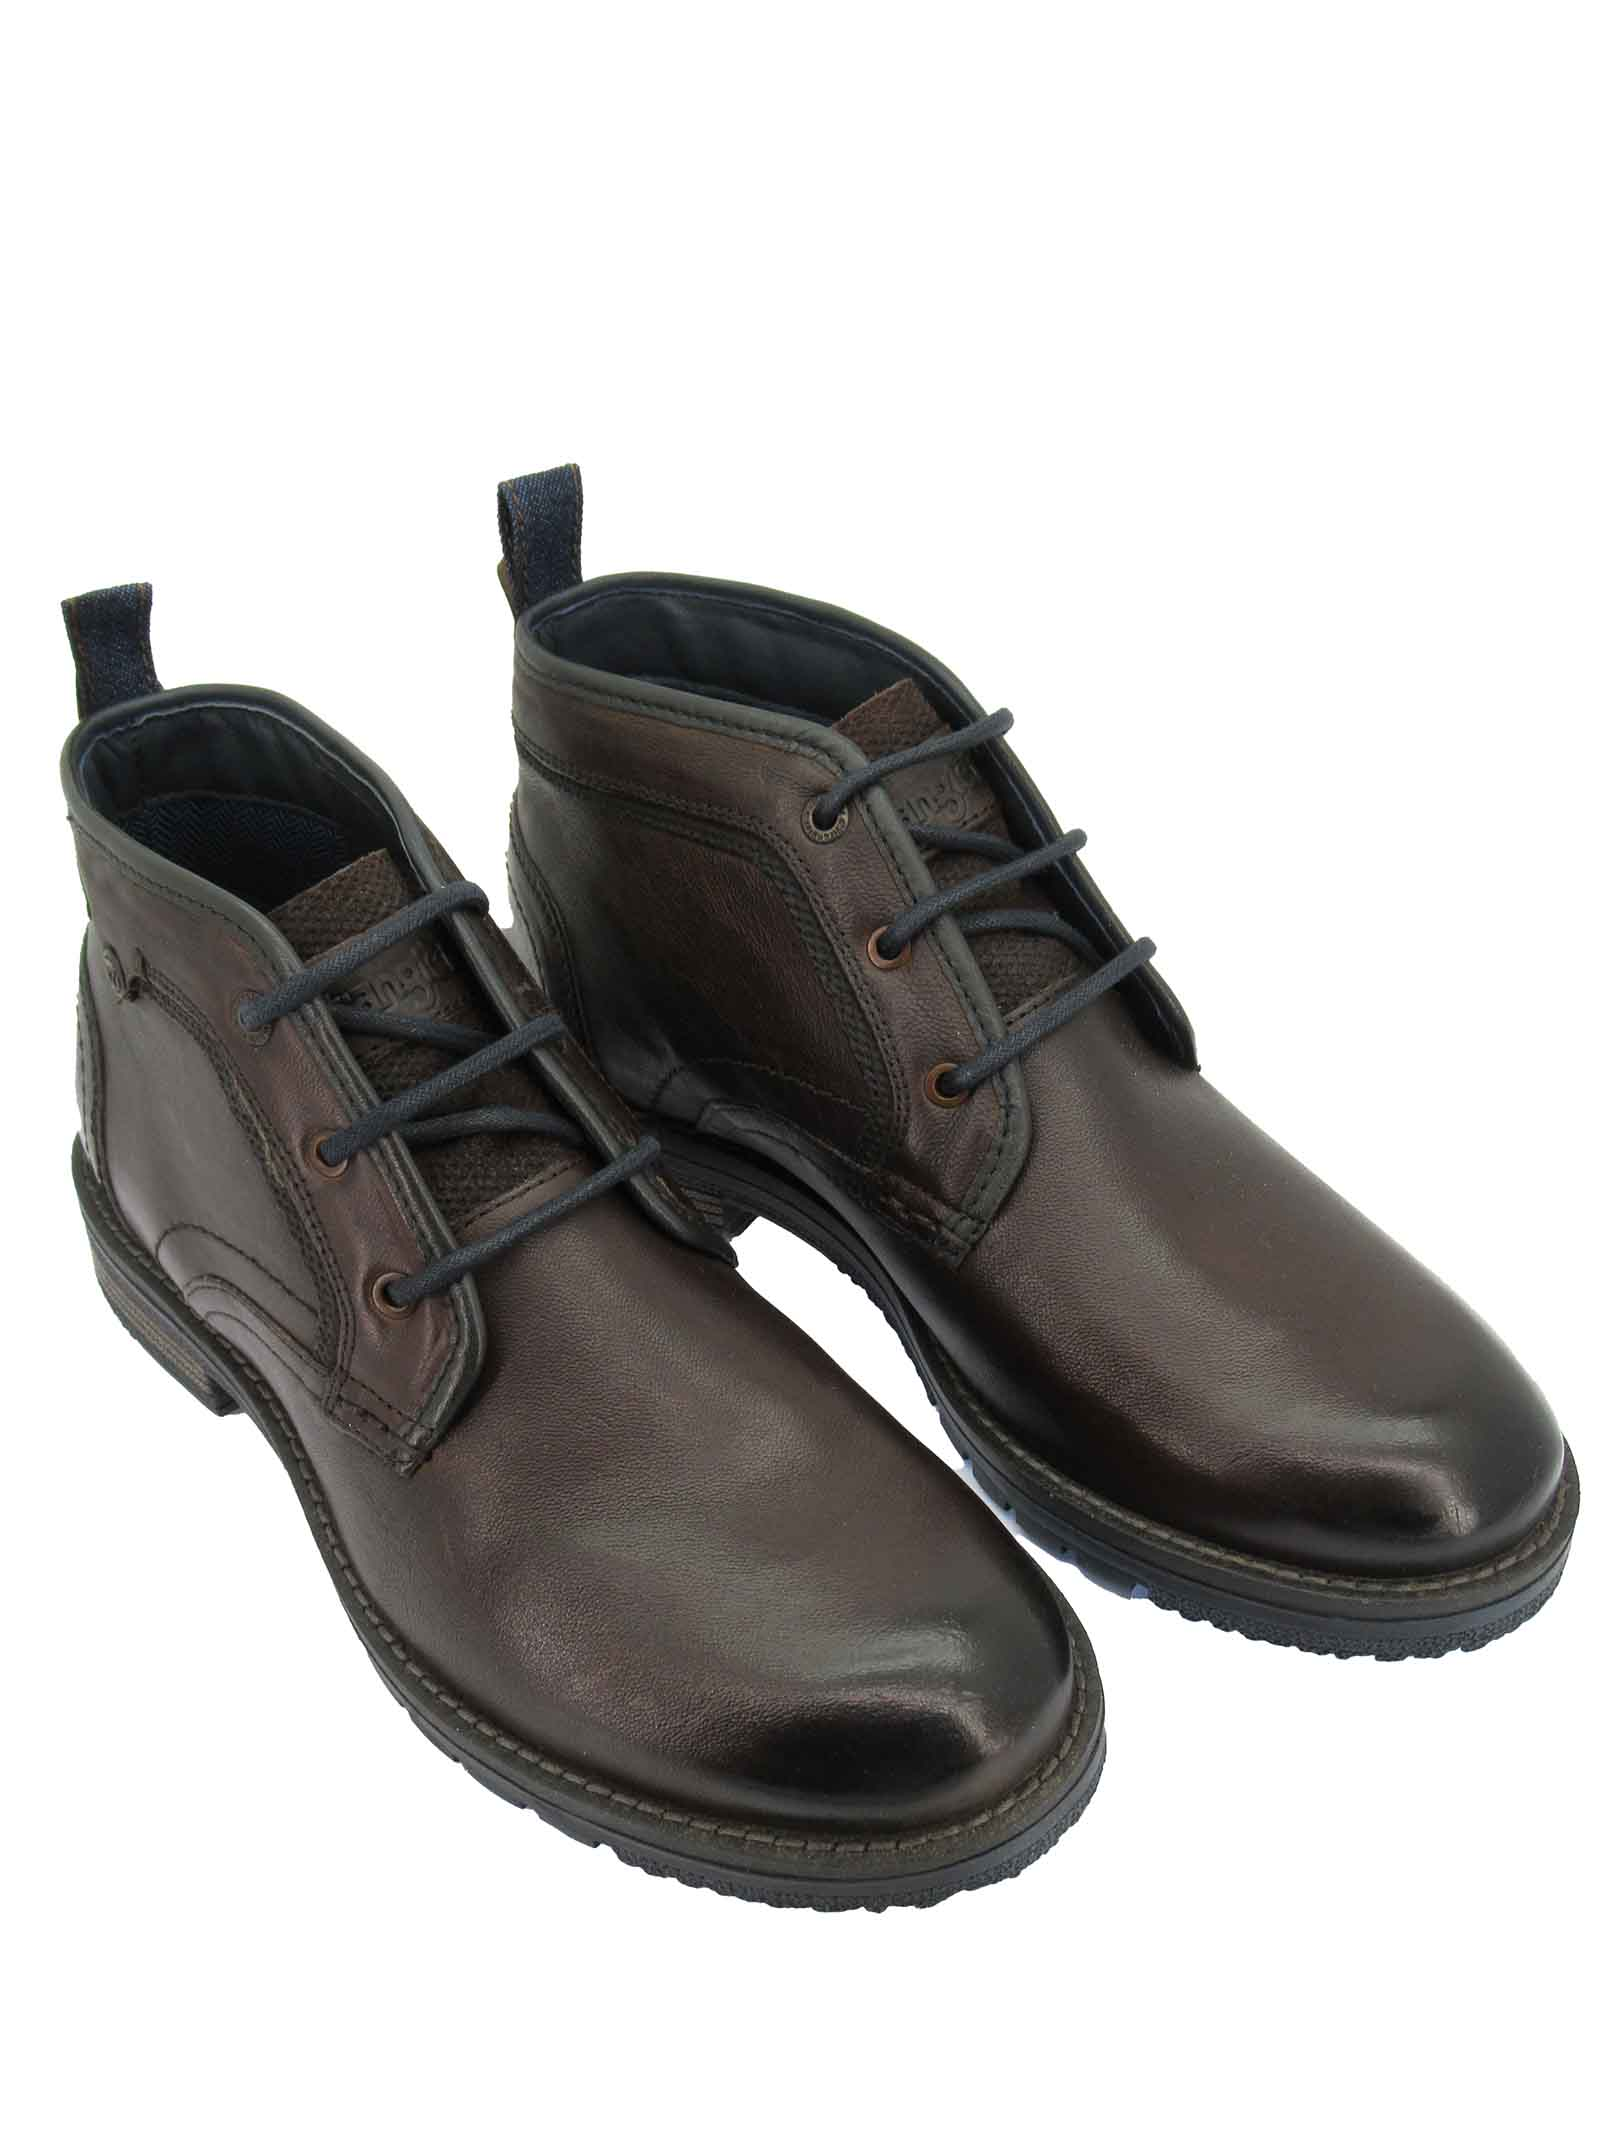 Men's Shoes Boogie Chukka Laced Ankle Boots in Brown Leather with Rubber Sole Wrangler | Ankle Boots | WM12050A030